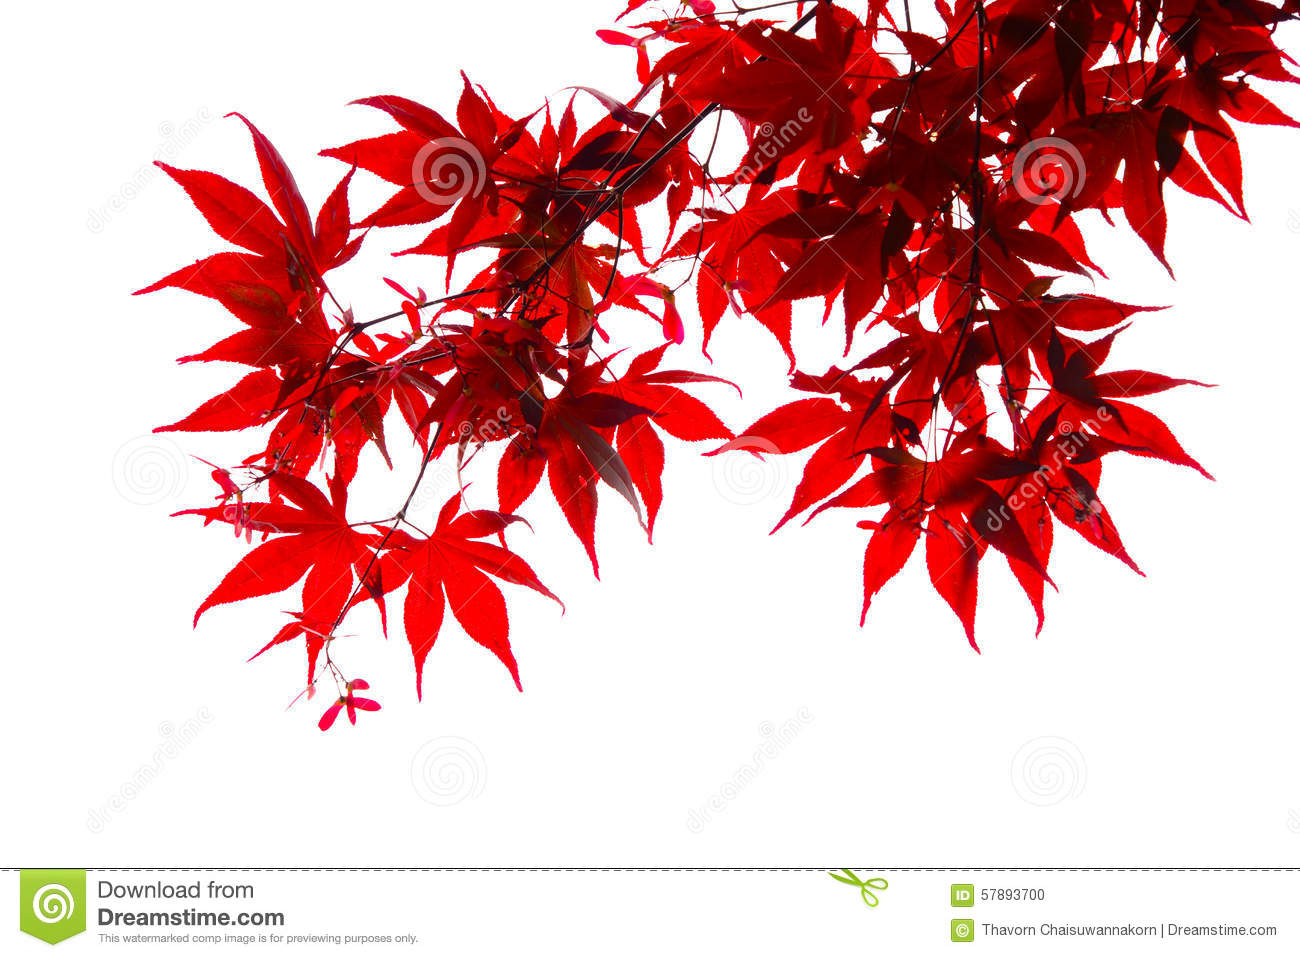 Download Isolated Japanese Red Maple Leaf Stock Photo - Image of japan, autumn: 57893700